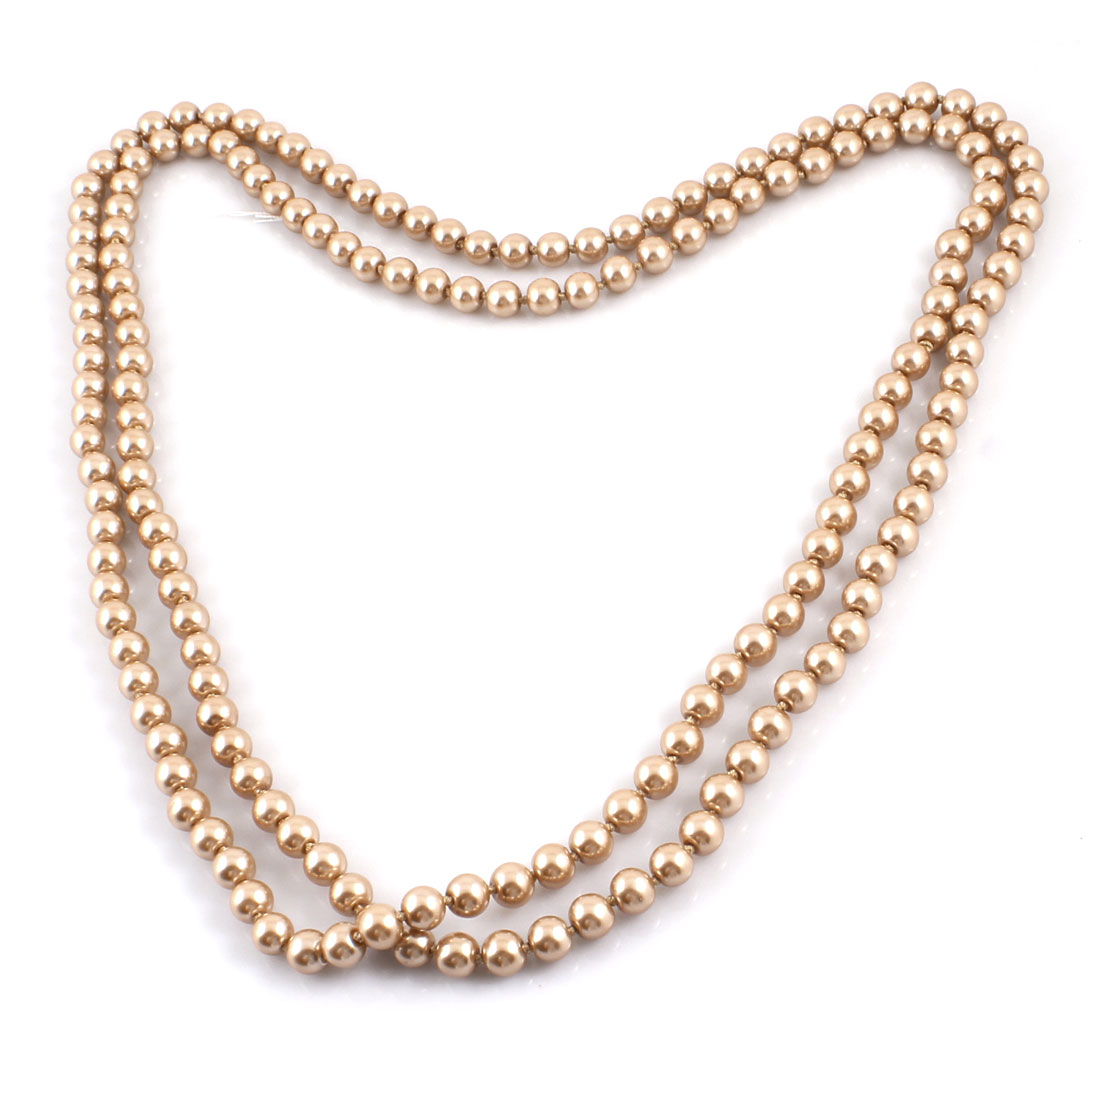 Rose Gold Tone Woman Imitation Pearl Decor Round Beads Sweater Necklace 4.9ft Long